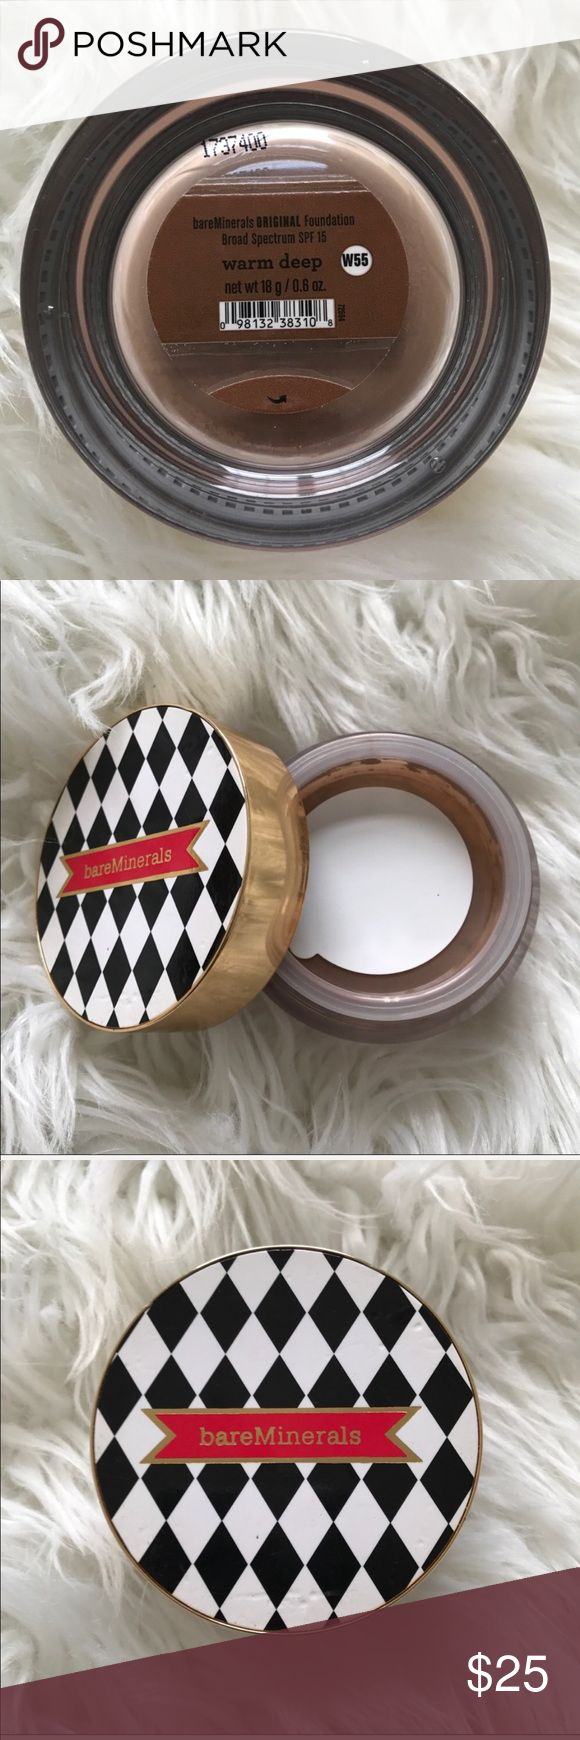 NEW Bare Minerals Deluxe Warm Deep Foundation Bare Minerals / Bare Escentuals / bareMinerals Collector's Edition Deluxe Original Mineral Loose Powder Foundation in shade Warm Deep . New & Sealed, no box. Deluxe 18g size. bareMinerals Makeup Foundation